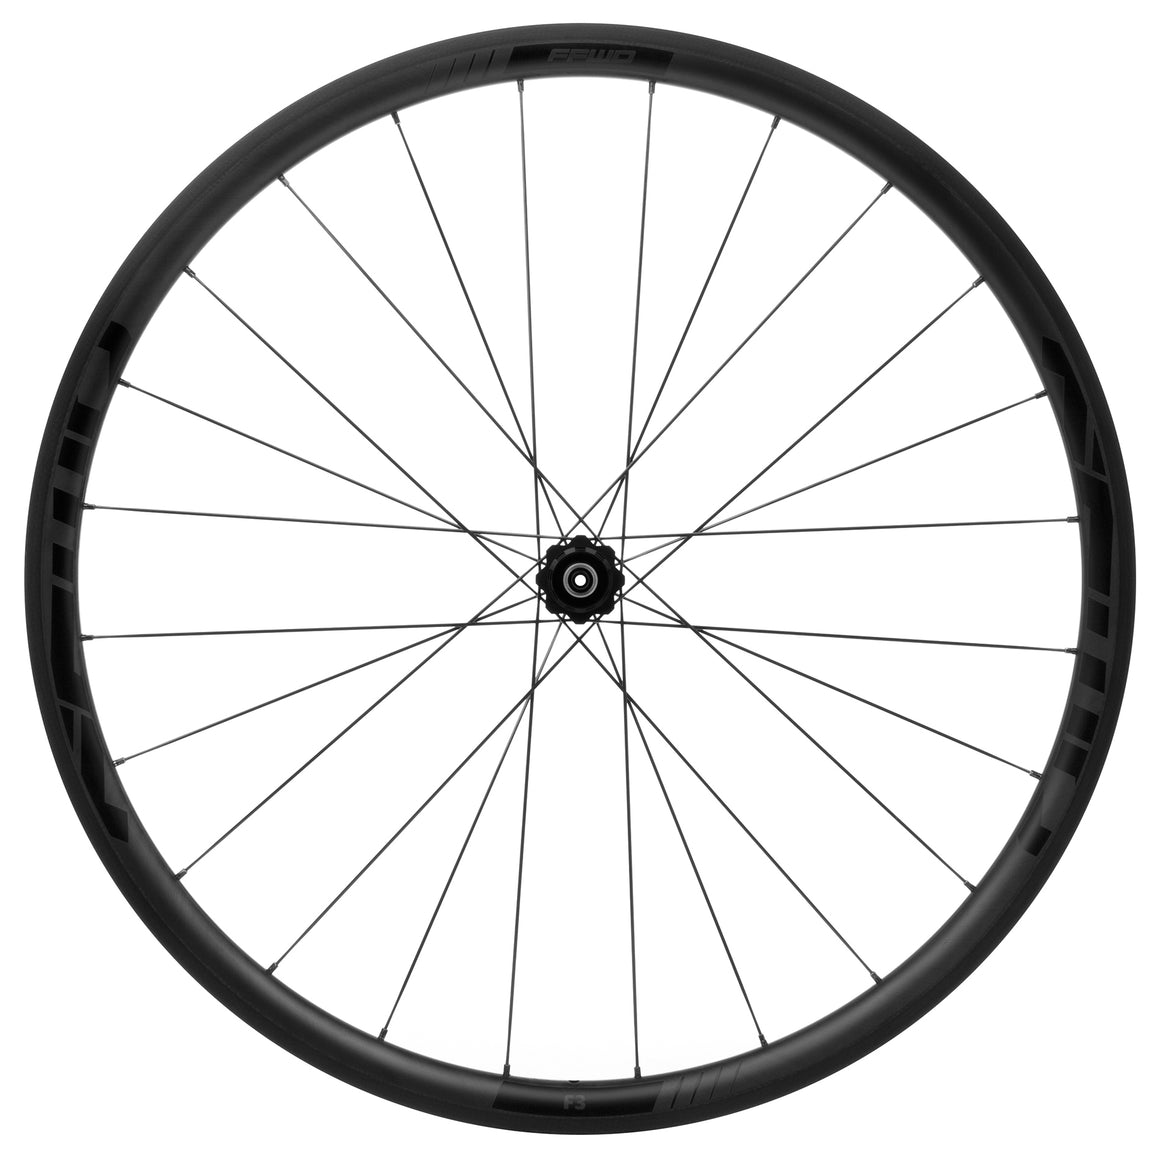 FFWD - F3R Full Carbon Clincher Wheel Set - Bike Wheels